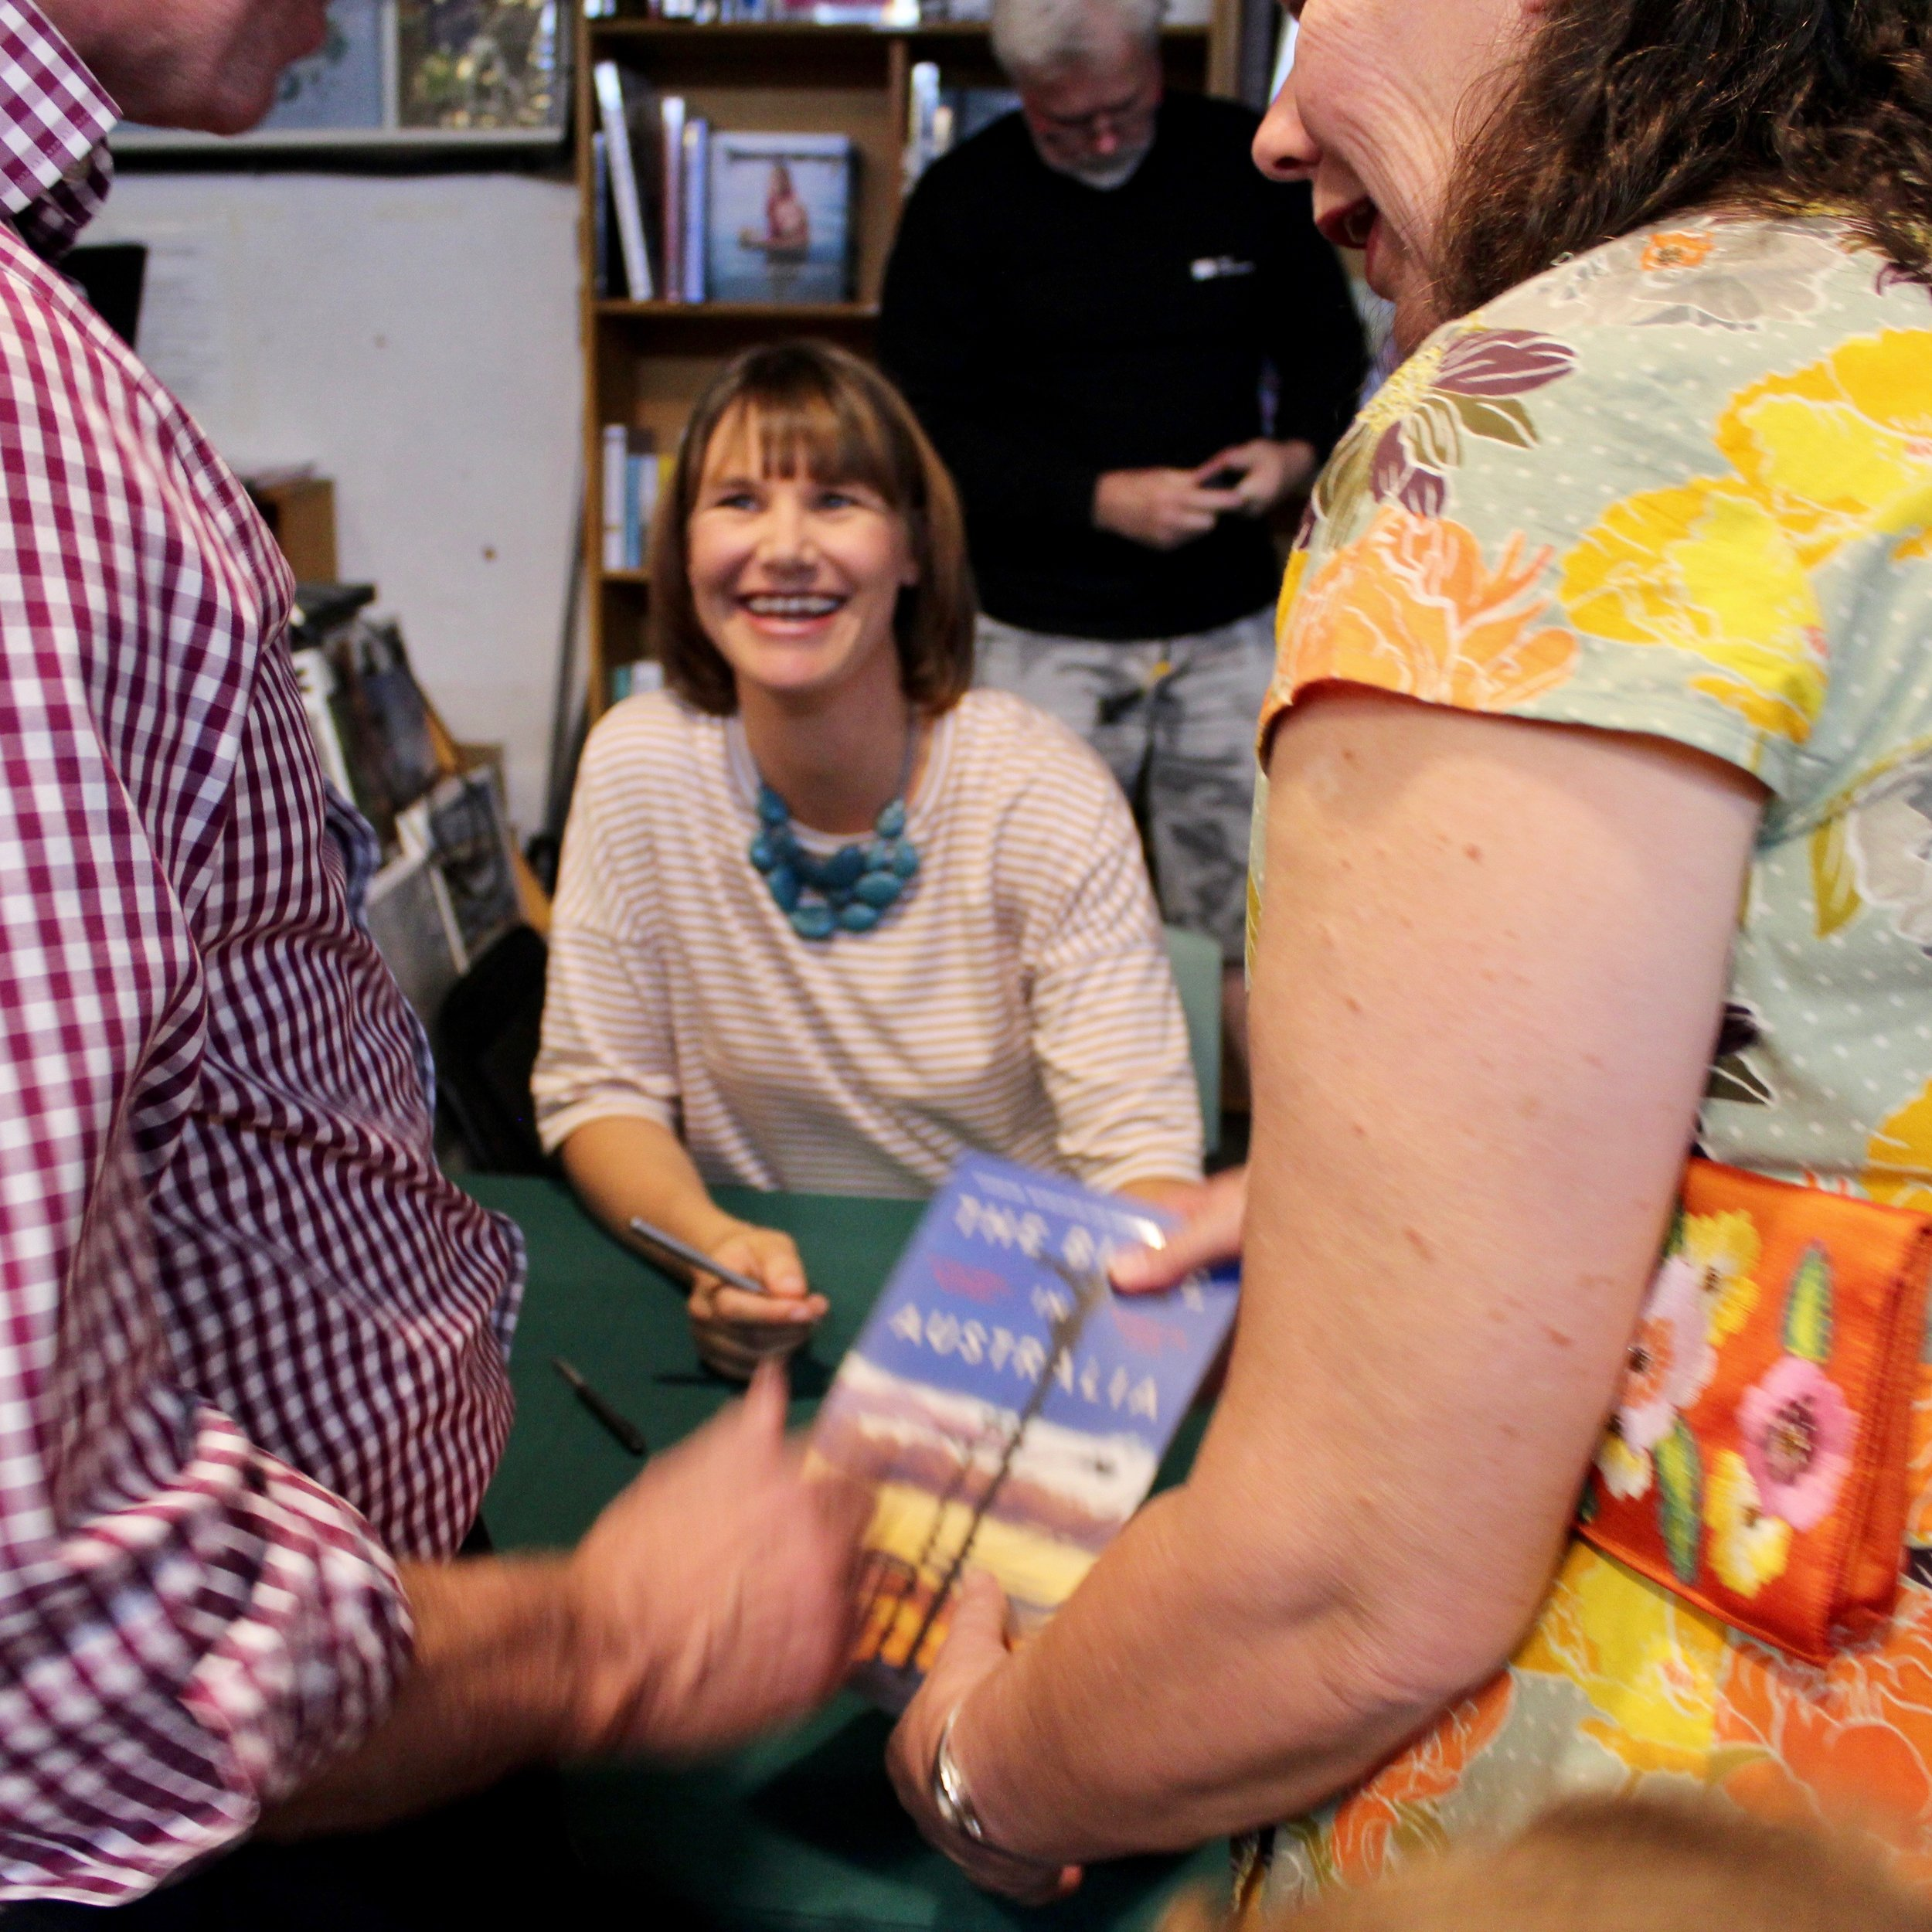 Meredith signing copies of her book at the launch.